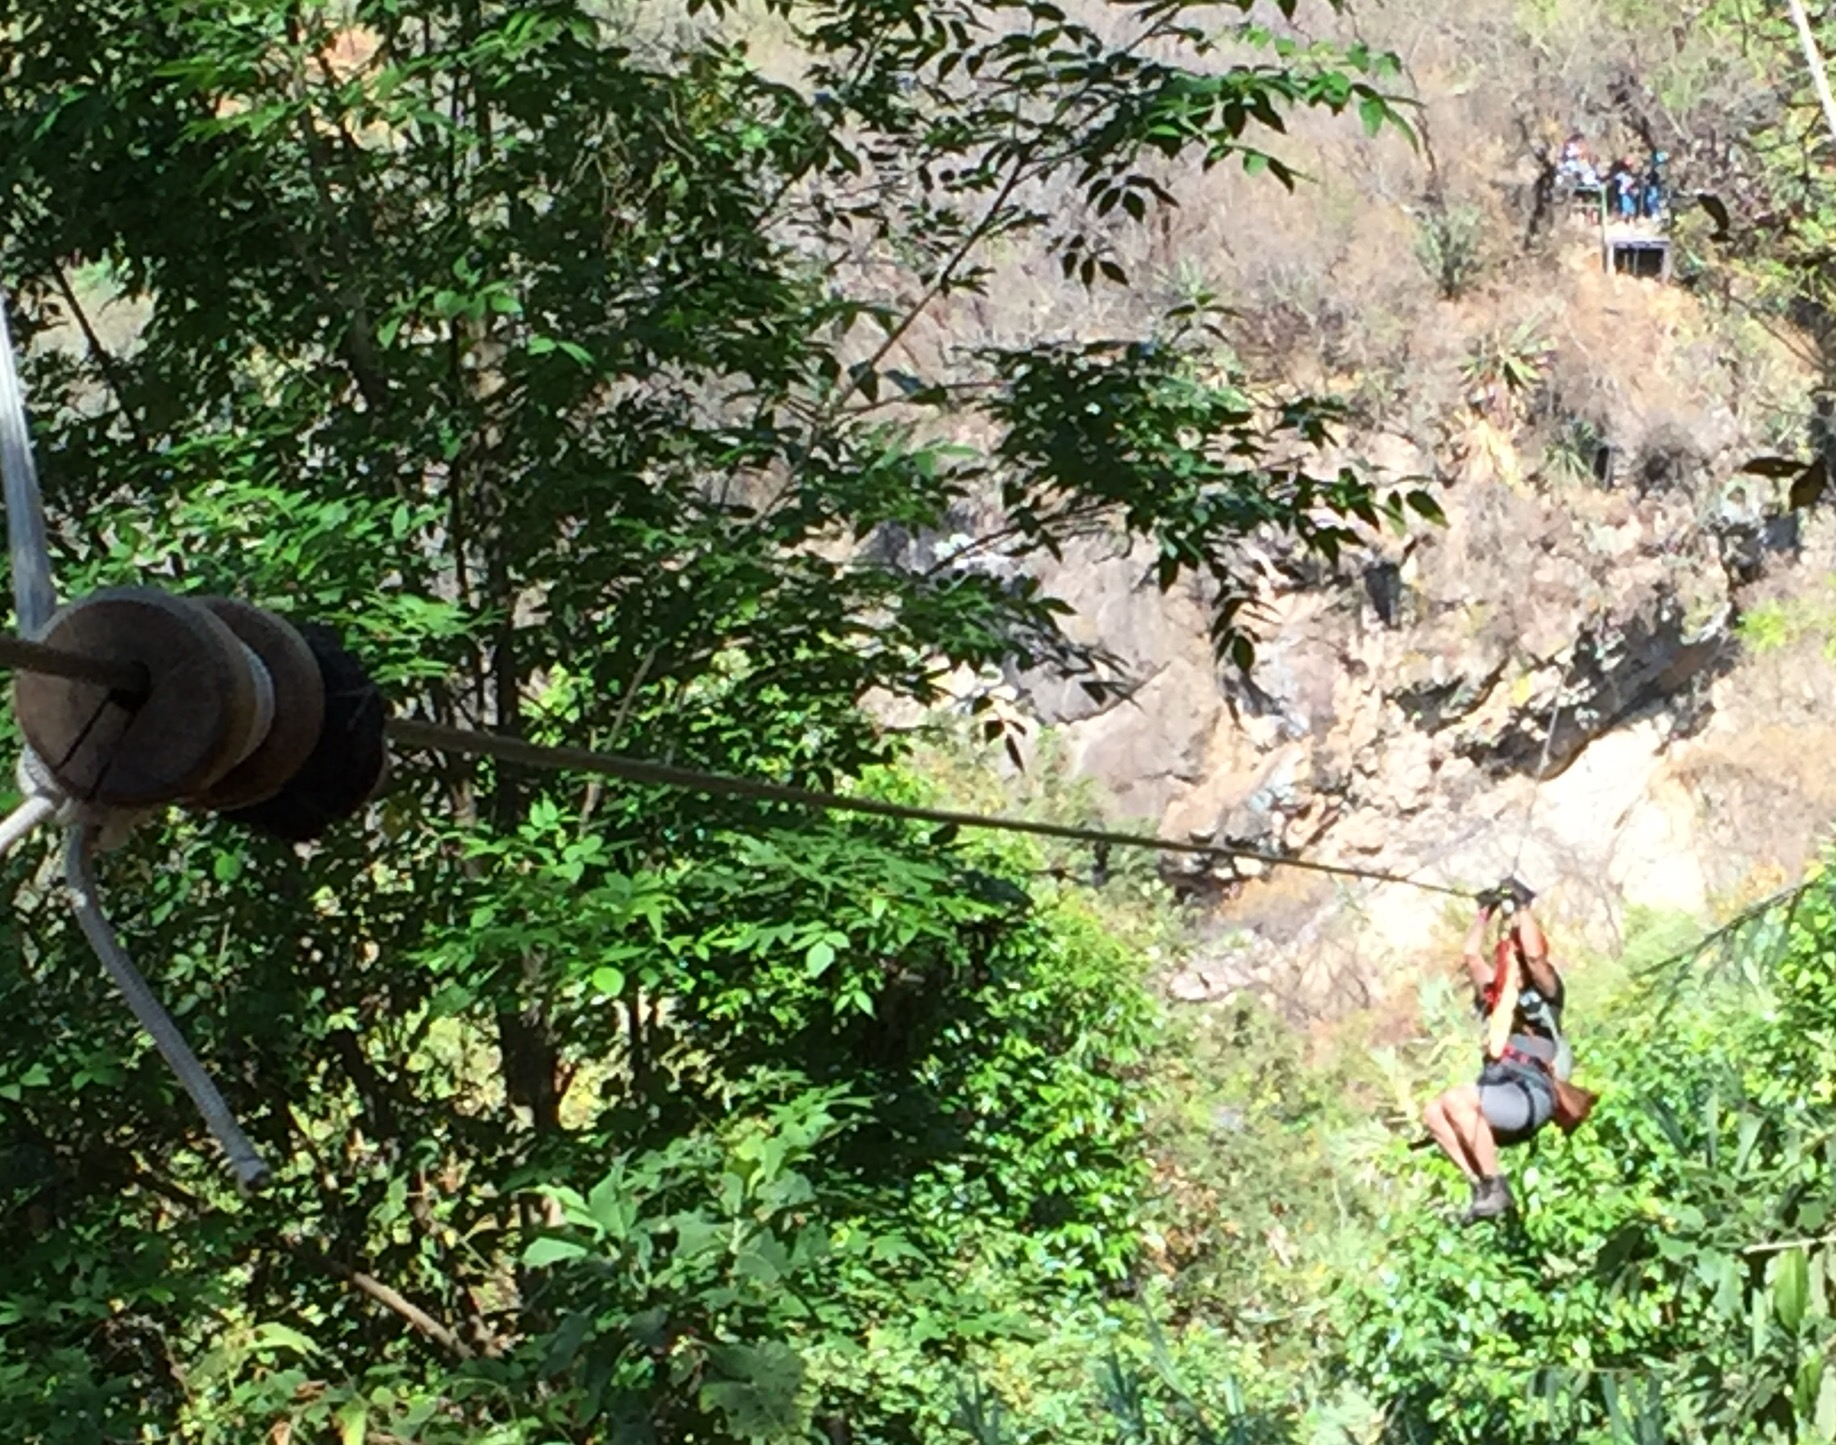 That's me again, ziplining through the forest above Lake Atitlan.